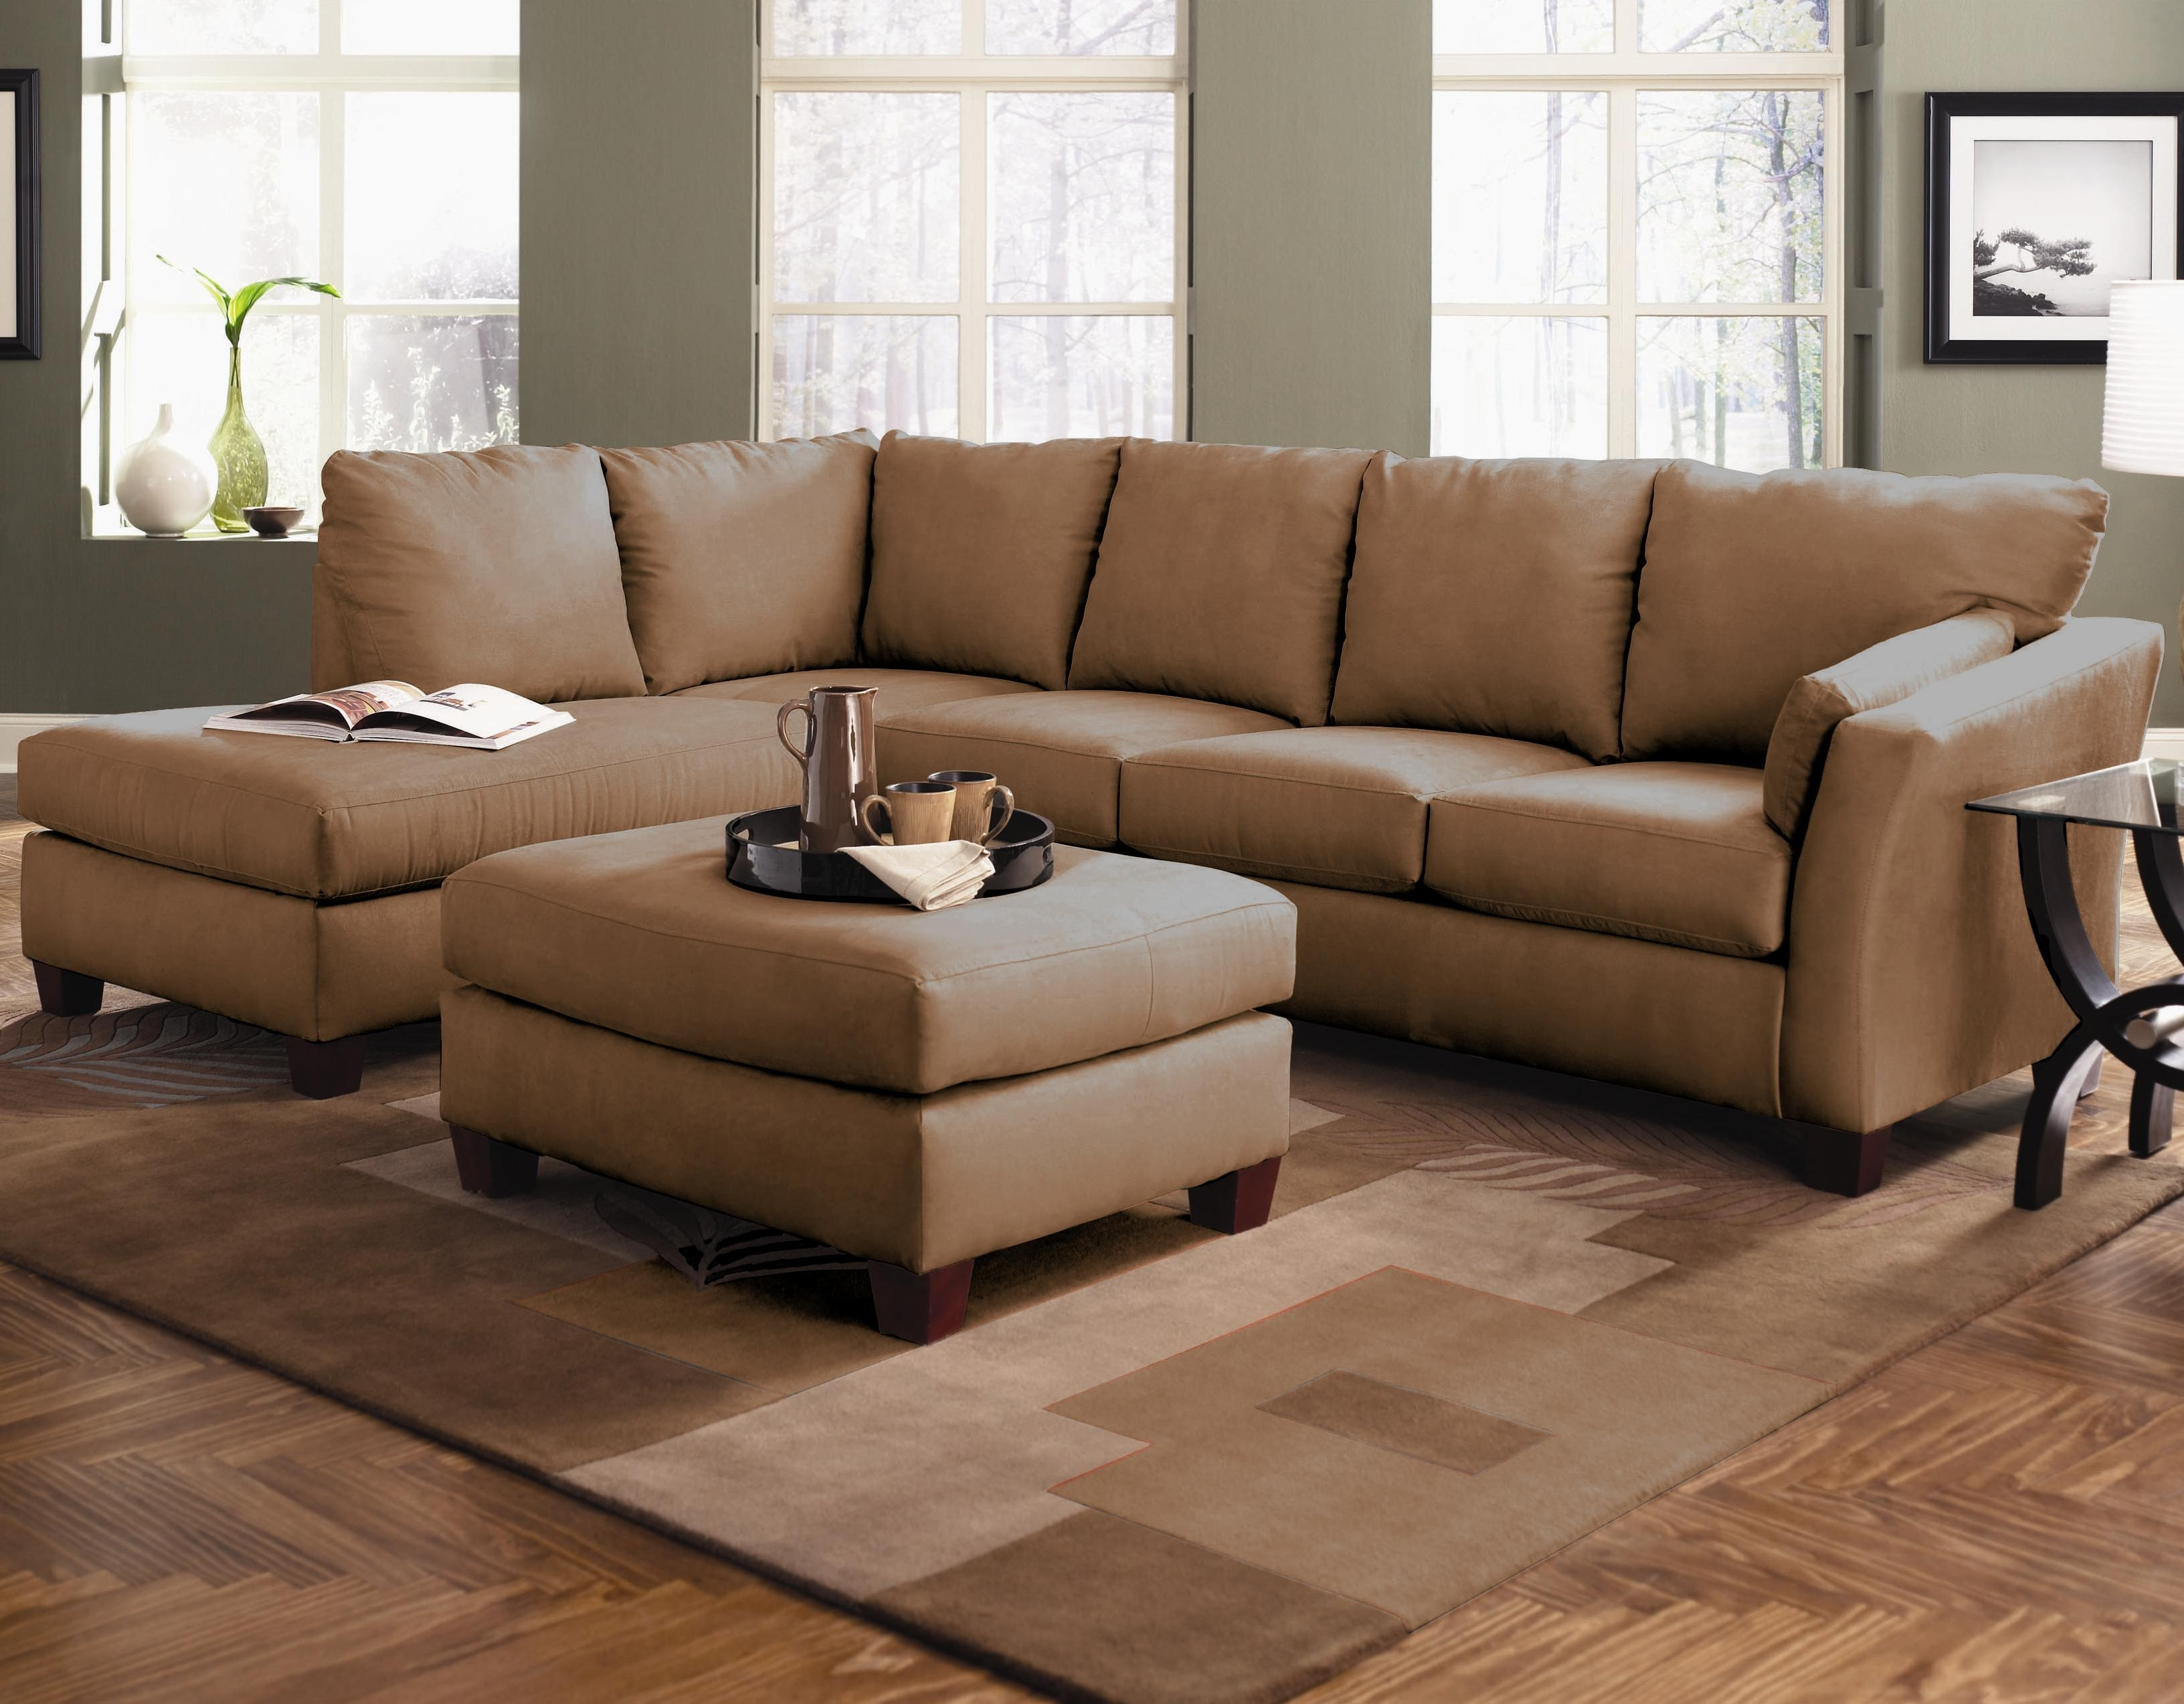 Value City Sectional Sofa For Furniture Cream Sectionals Big Remodel For Value City Sectional Sofas (View 4 of 10)